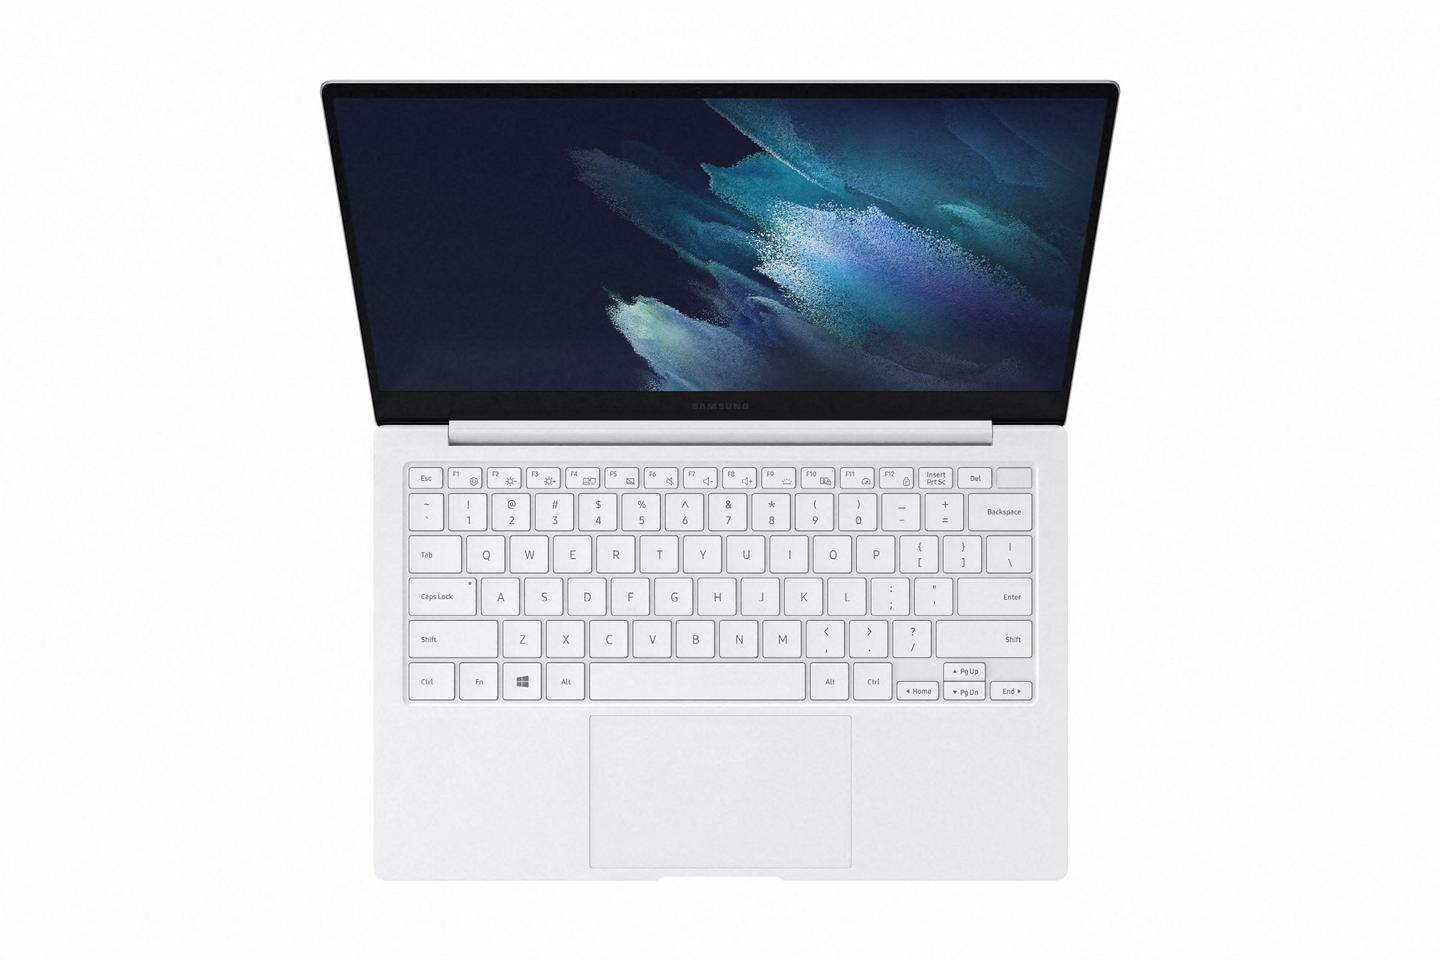 The Galaxy Book Pro laptop comes with a re-engineered keyboard that boasts scissor switches and wide keys